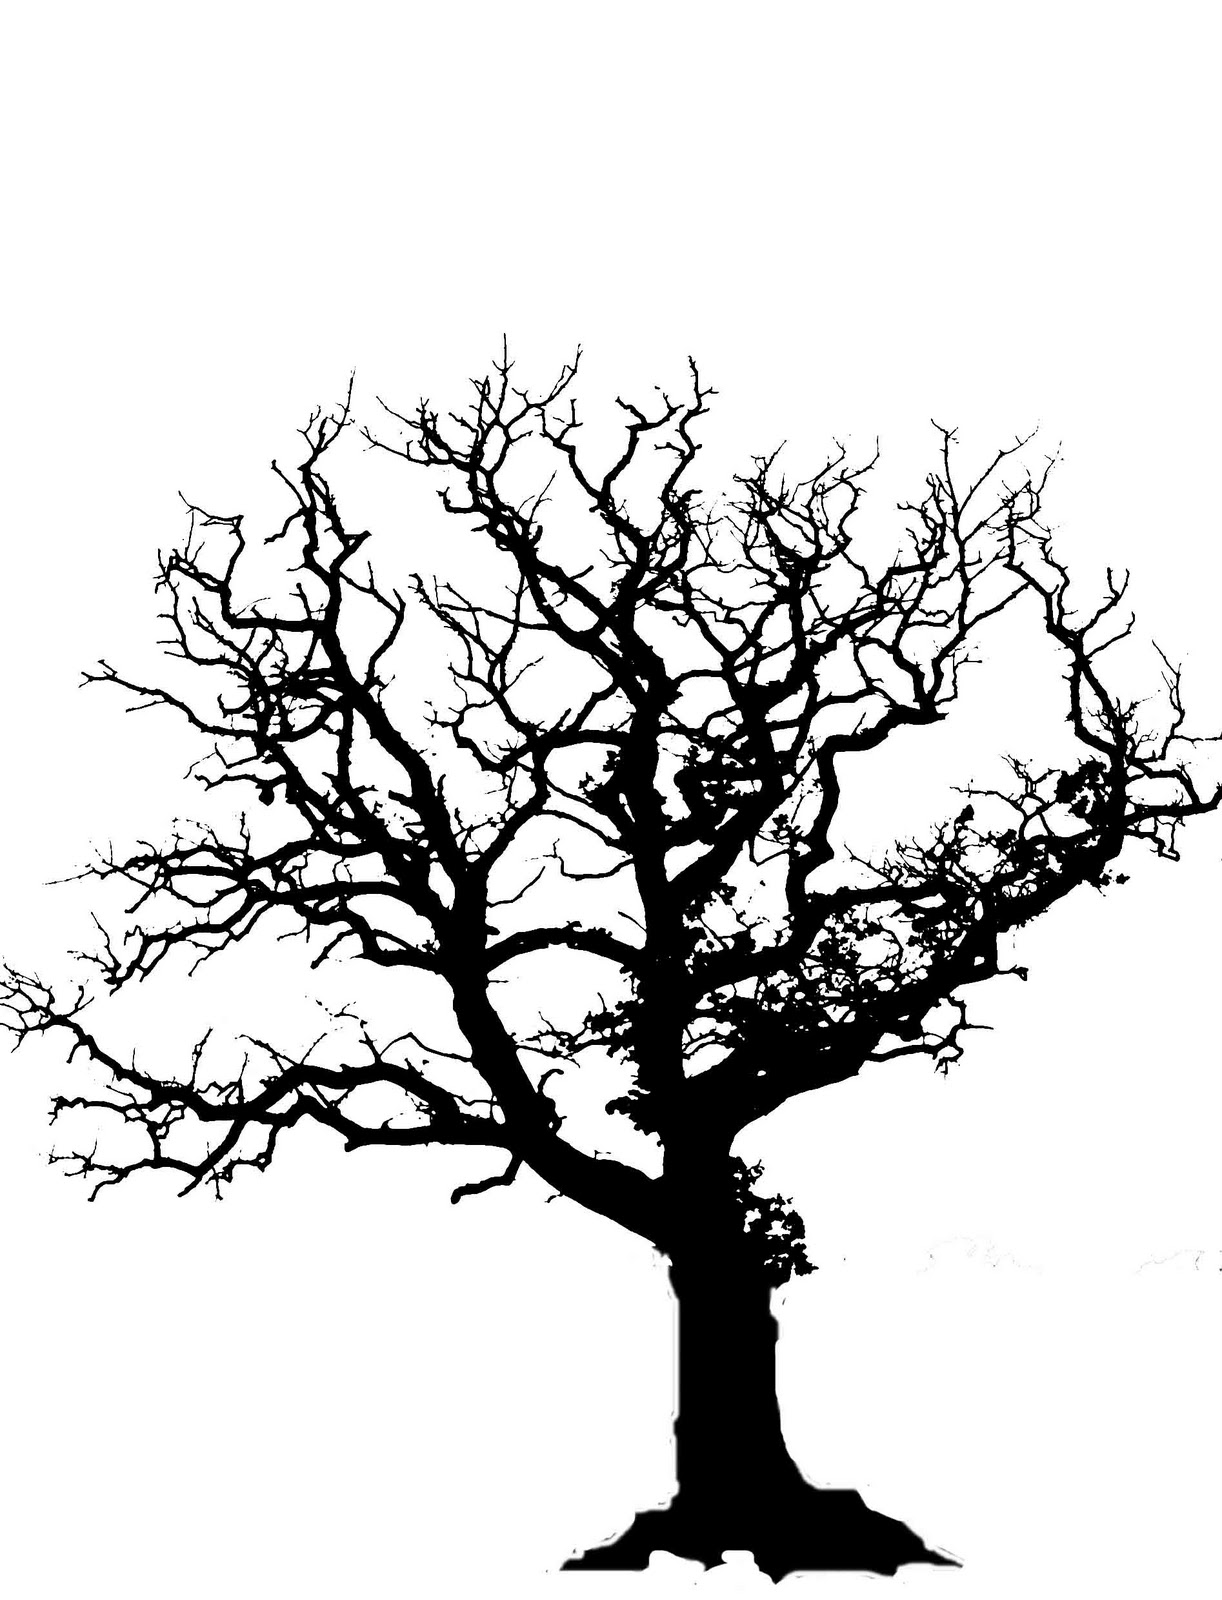 Barren clipart autumn tree Oak Free oak%20tree%20silhouette%20with%20roots Images Clipart